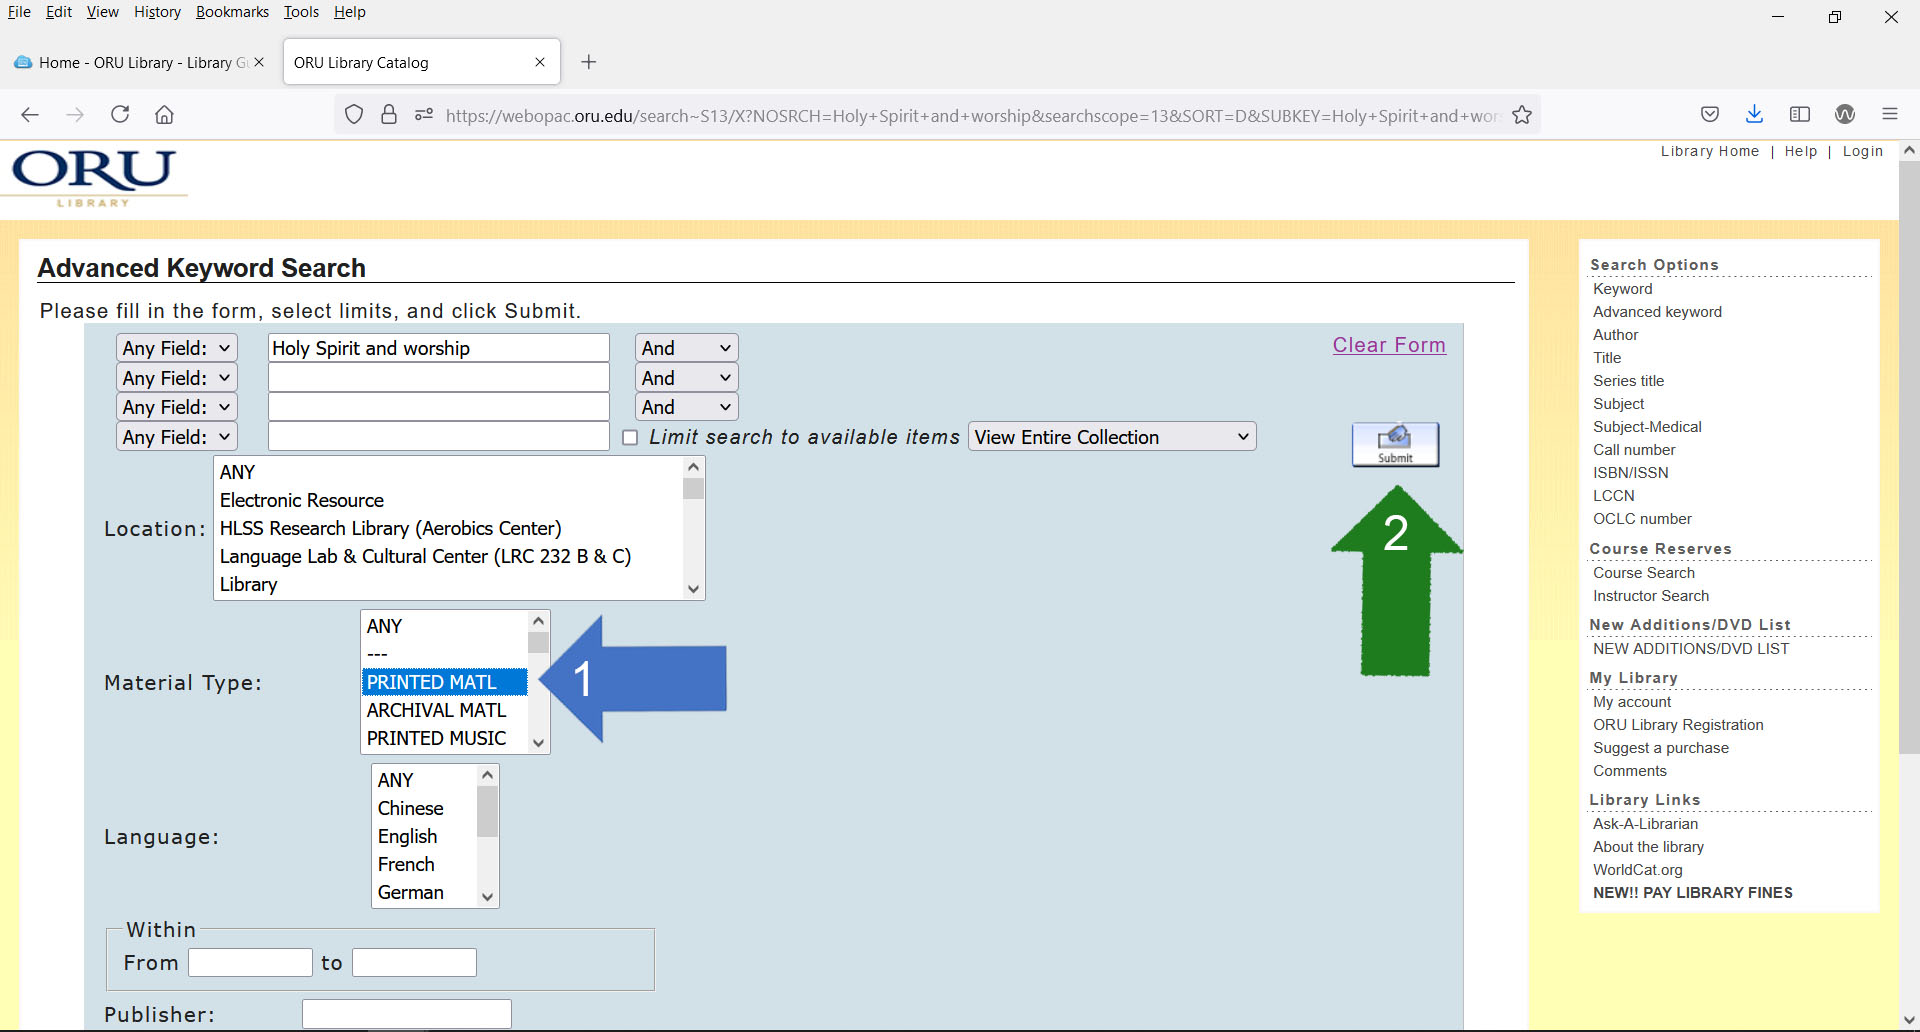 modify catalog results by limiting to print materials